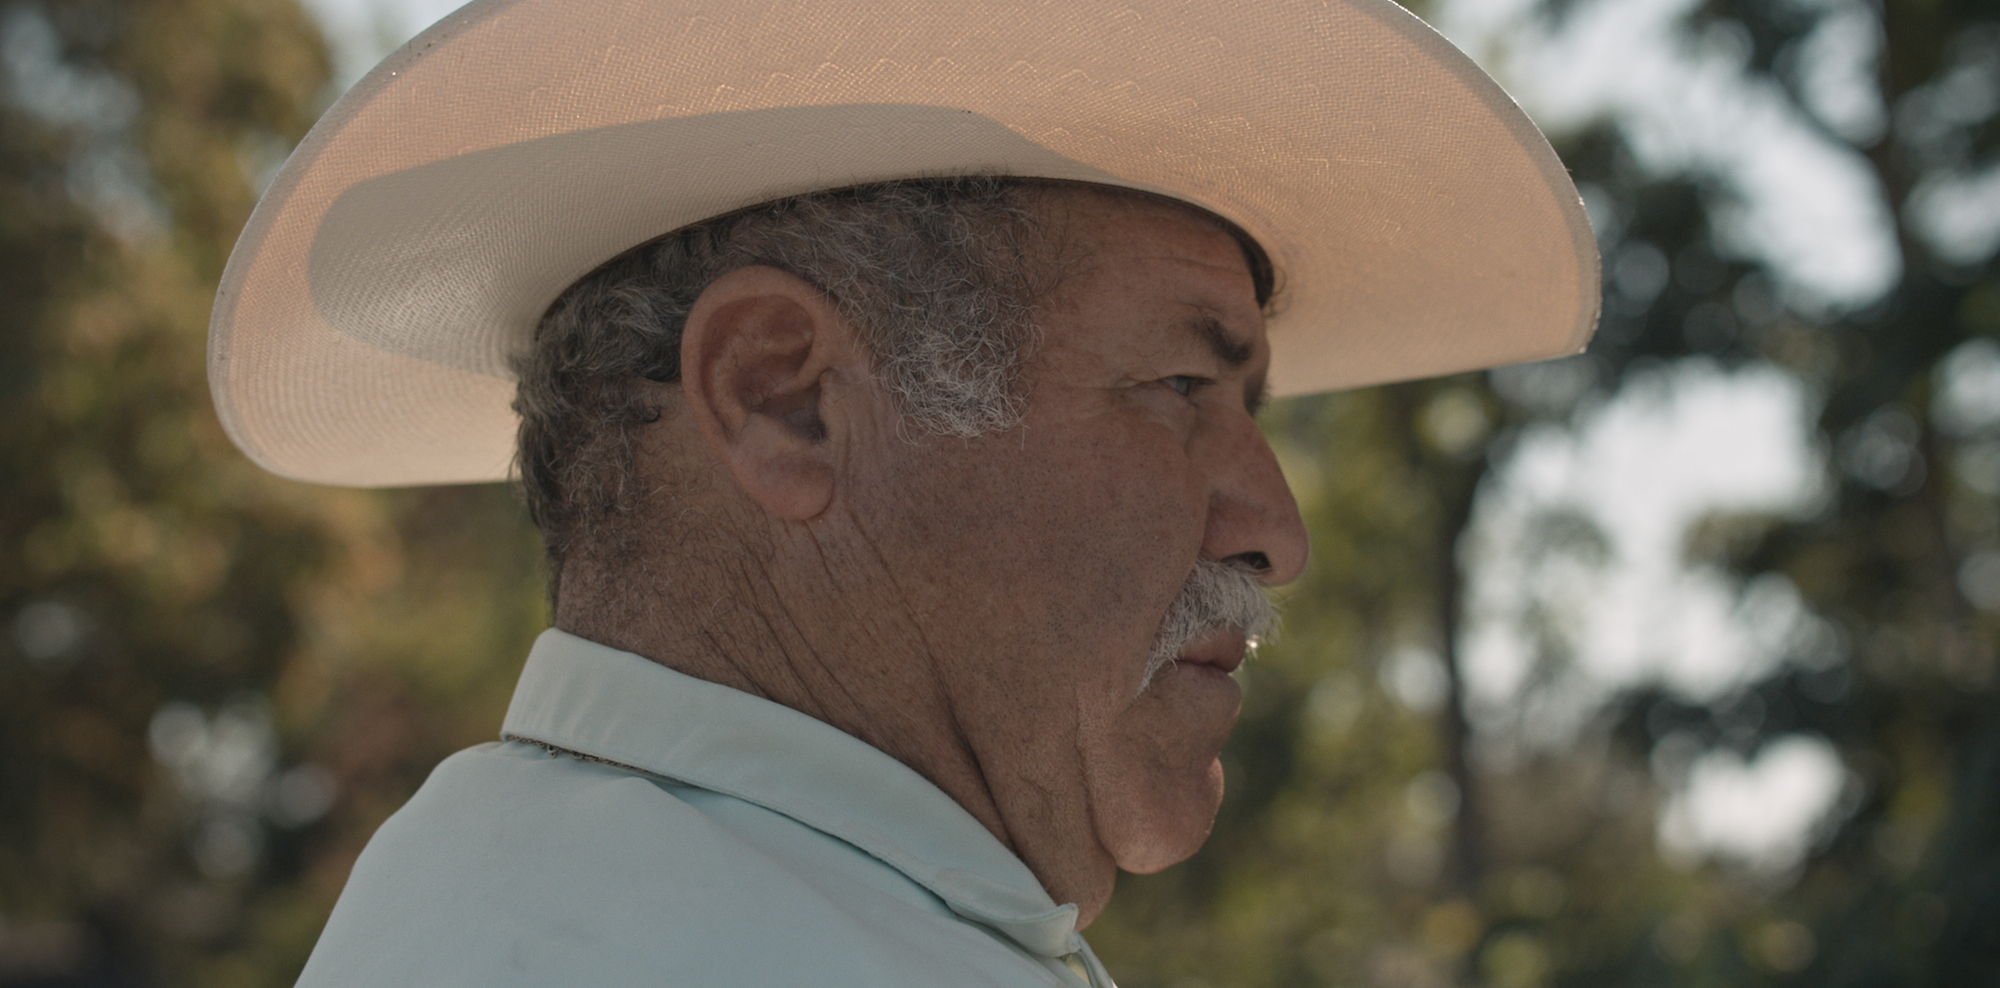 'Lupe Under the Sun' Is a Film About Life in the Fields With Real Farmworkers as Actors